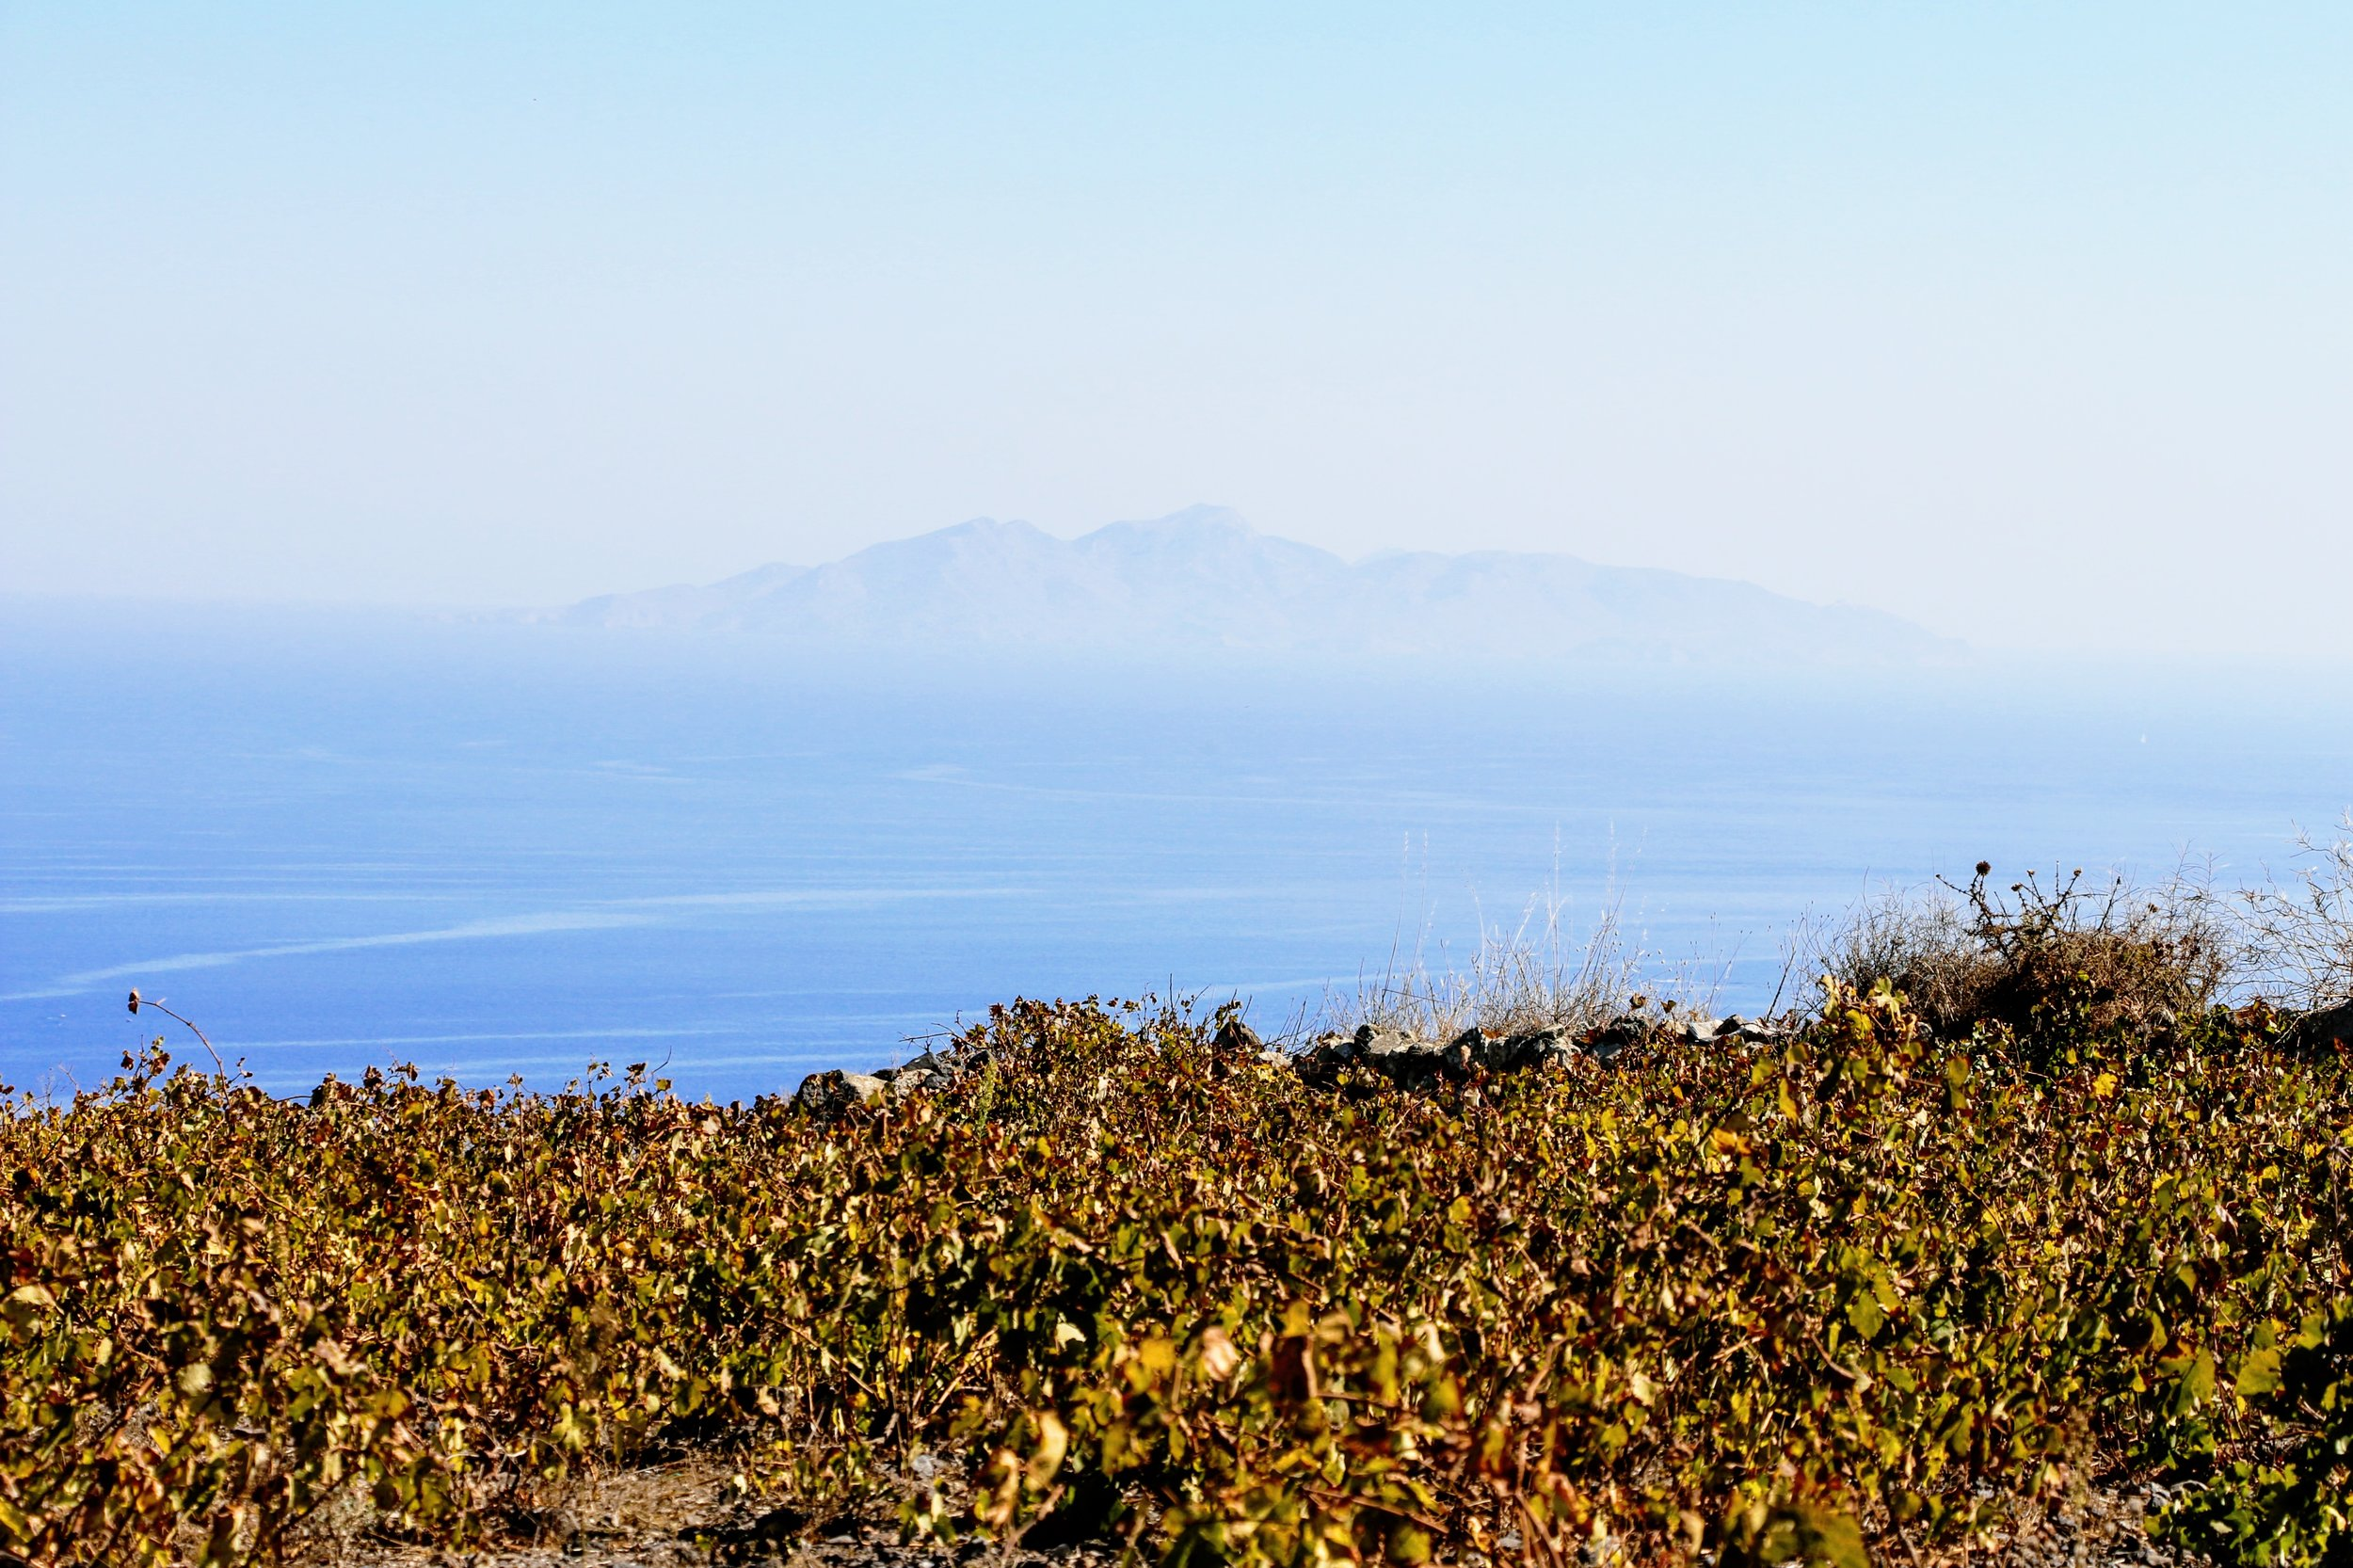 Throughout the island of Santorini, there is an estimated 1400 hectares of vineyards still under cultivation